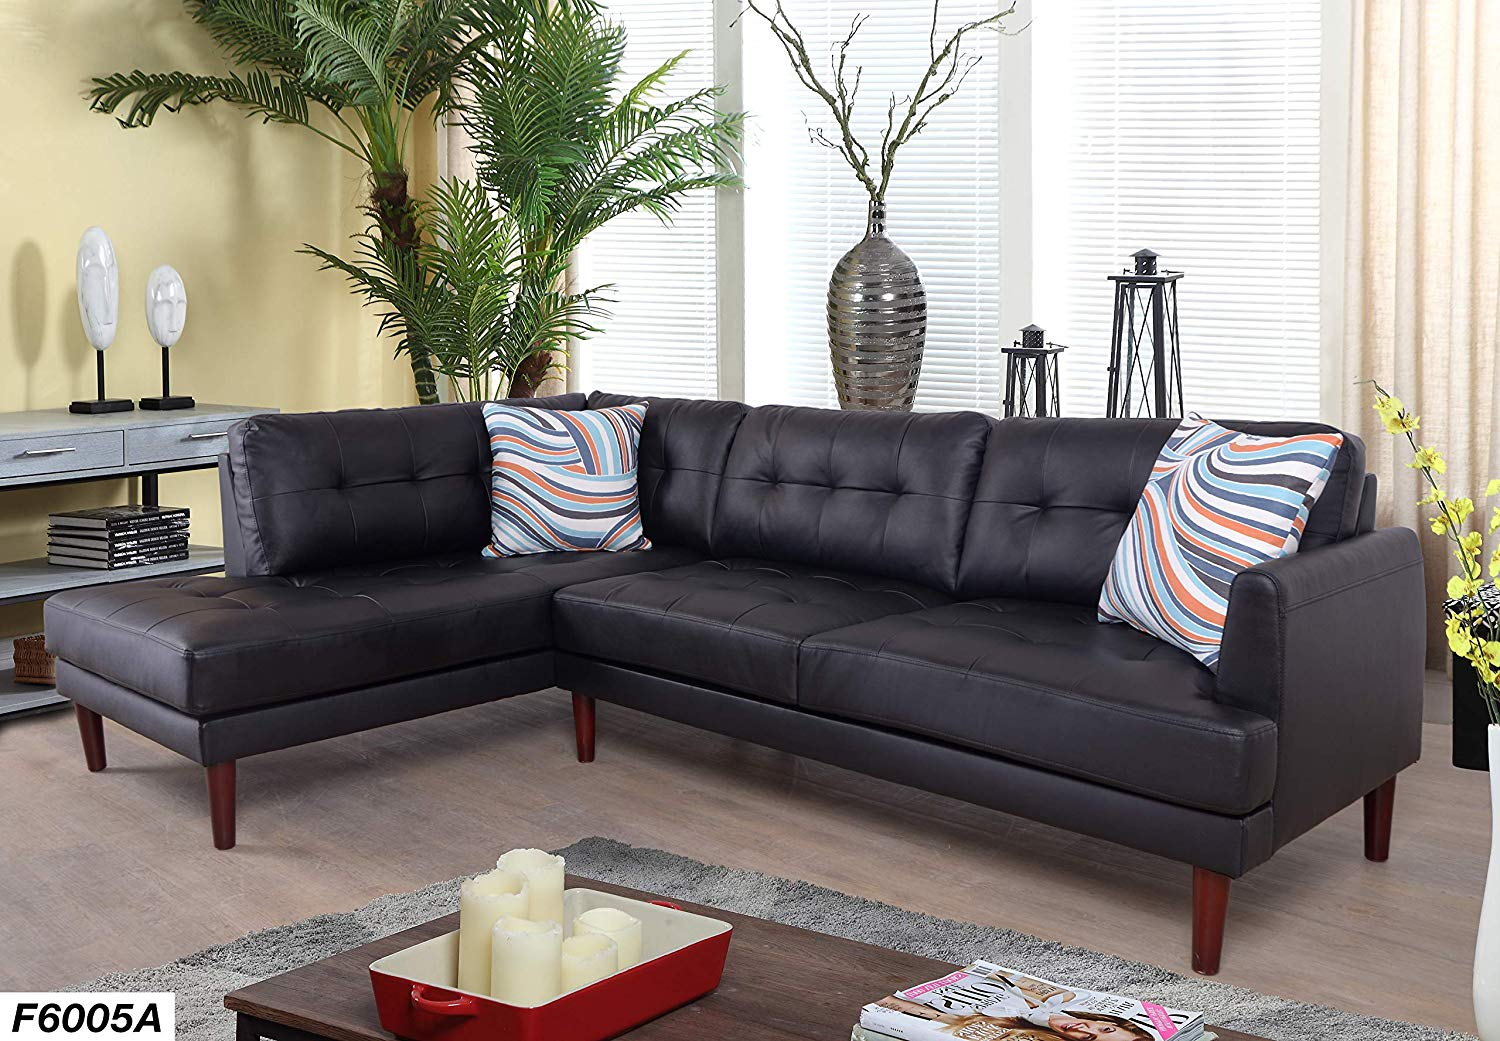 Lifestyle Furniture Jasper Left Facing Faux Leather Sectional Sofa,Black(LS6005A)